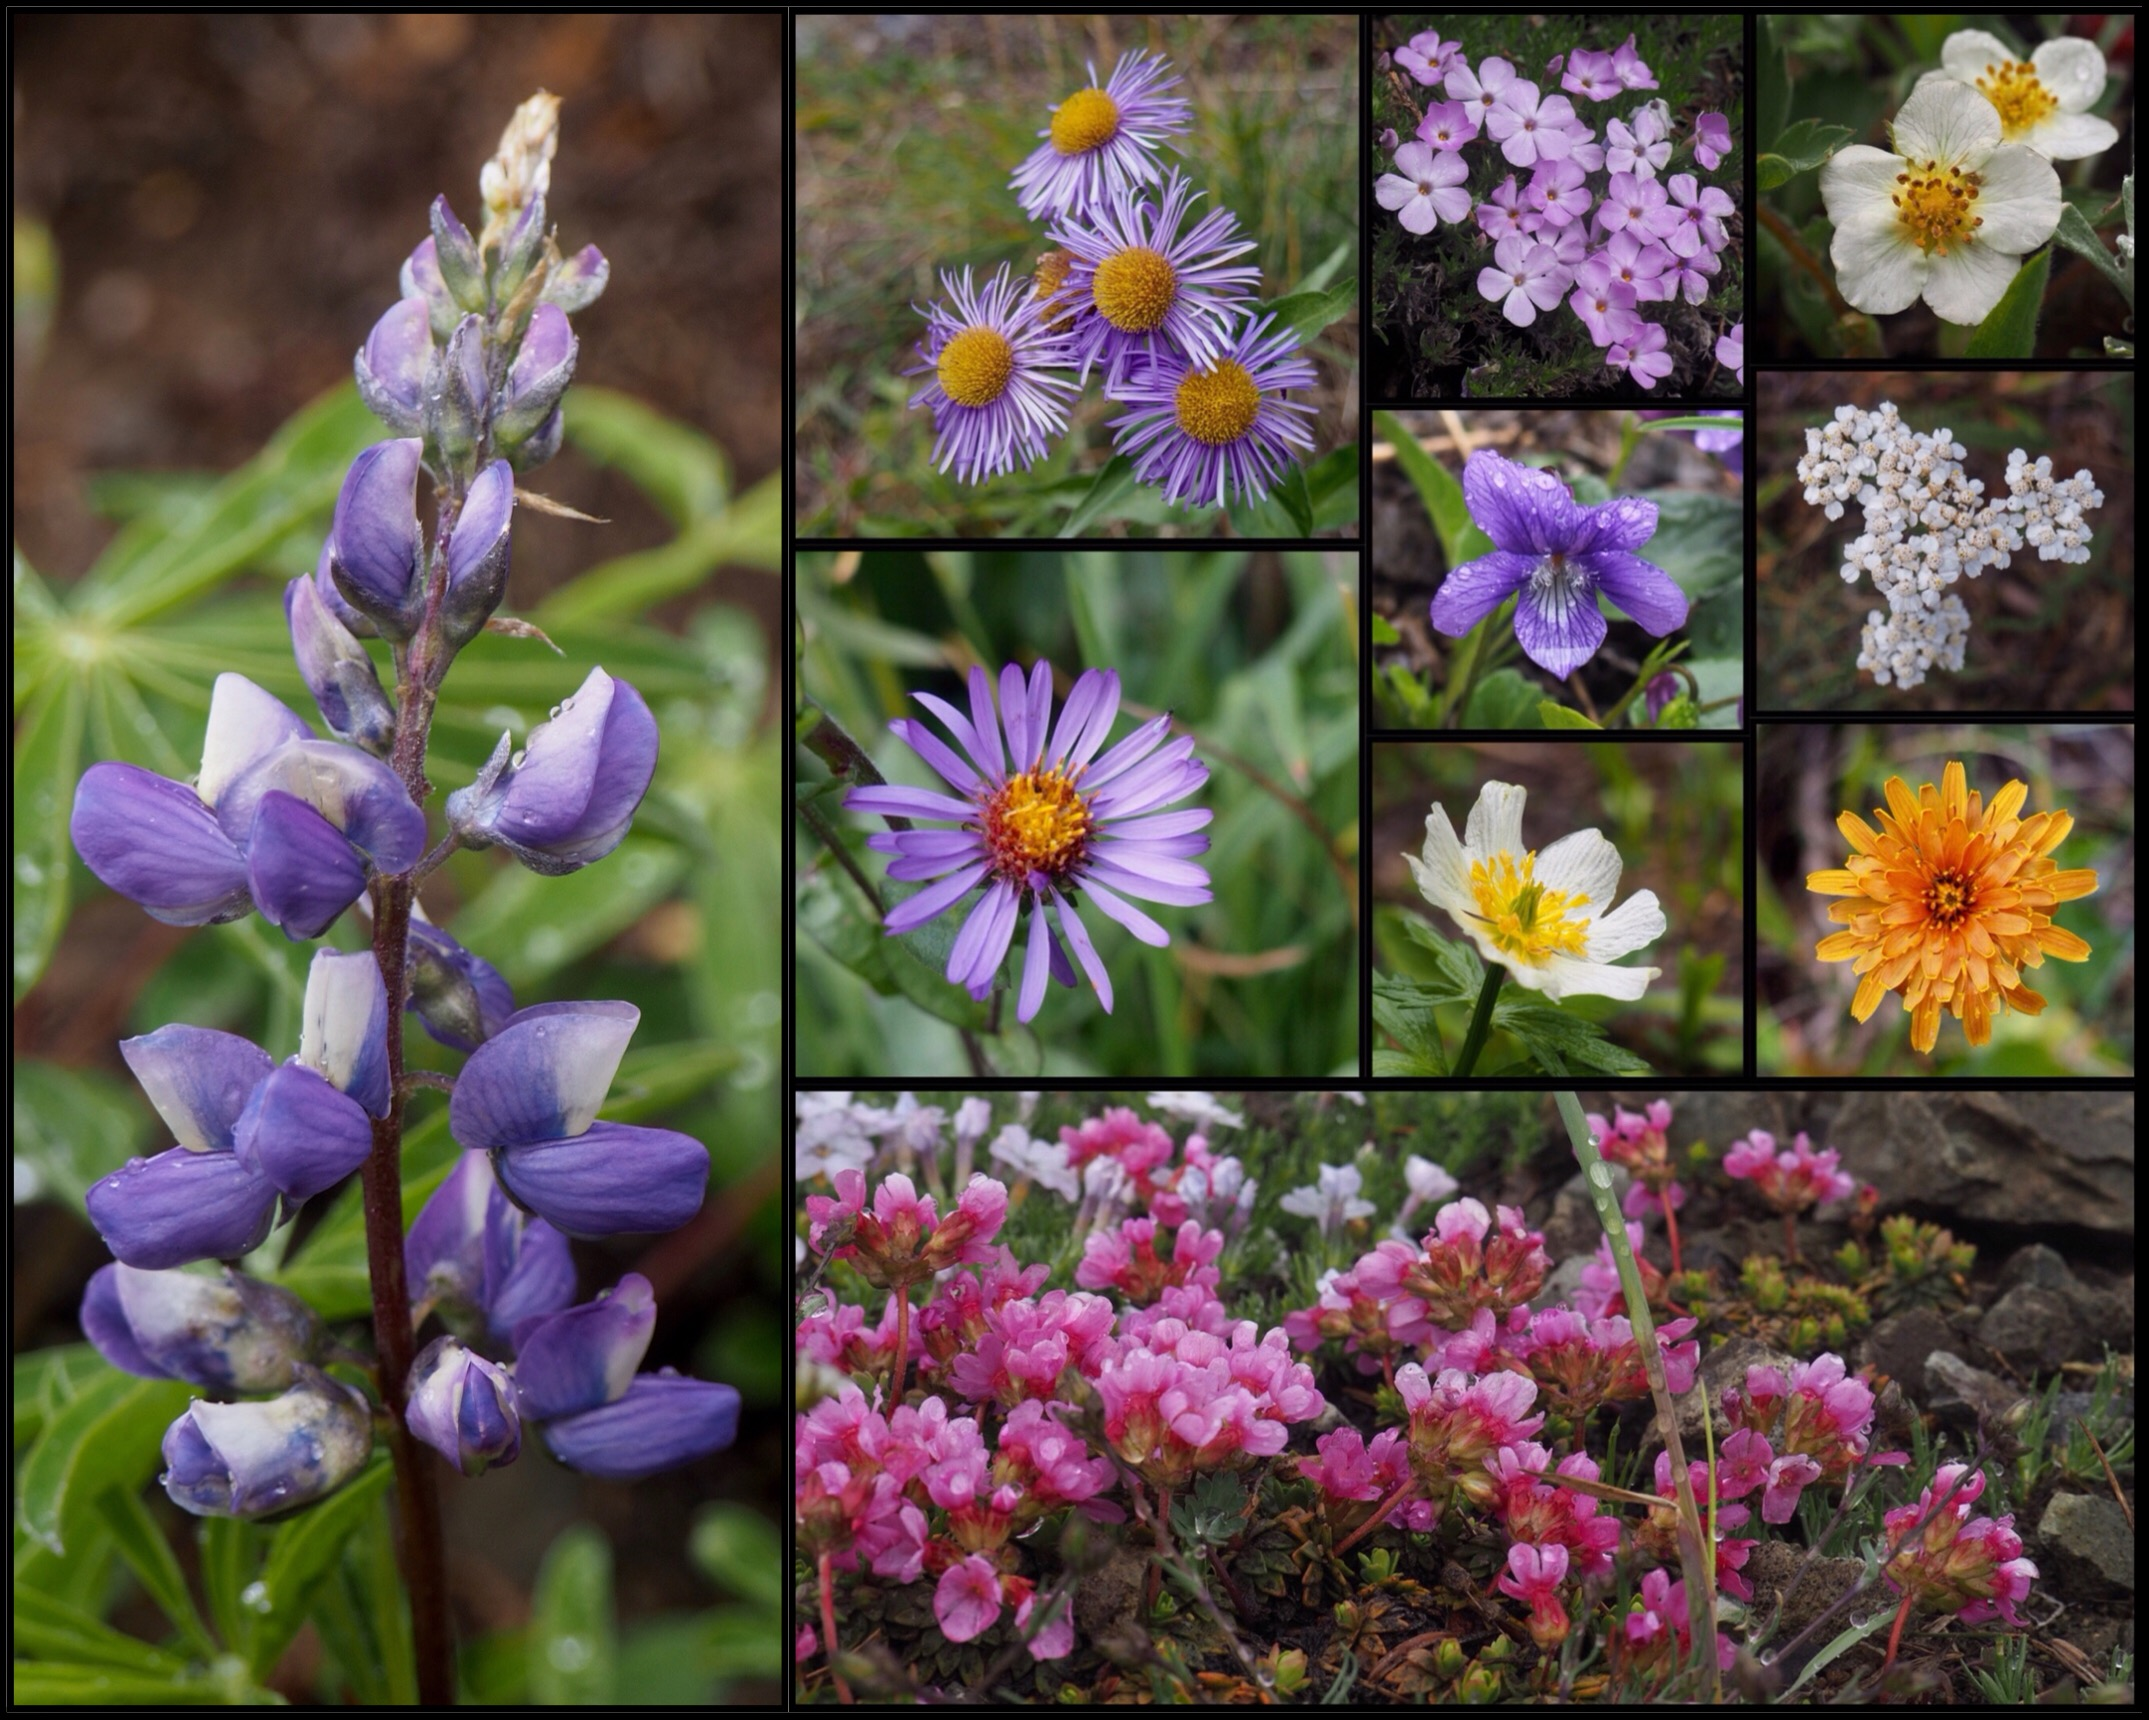 In the harsher climate near the treeline, still other blooms flourish, including lupines (Lupinus sp.) (first column), splendid fleabanes (Erigeron speciosus) (second column, top), alpine leafybract asters (Symphyotrichum foliaceum) (second column, center), spreading phlox (Phlox diffusa) (third column, top), violets (Viola sp.) (third column, upper center), western globeflowers (Trollius albiflorus) (third column, lower center), strawberries (Fragaria sp.) (fourth column, top), common yarrow (Achillea millefollium) (fourth column, upper center), orange agoserises (Agoseris aurantiaca) (fourth column, lower center), and cliff dwarf-primroses (Douglasia laevigata) (bottom). Upper Big Quilcene Trail, June 16 and September 22, 2016.